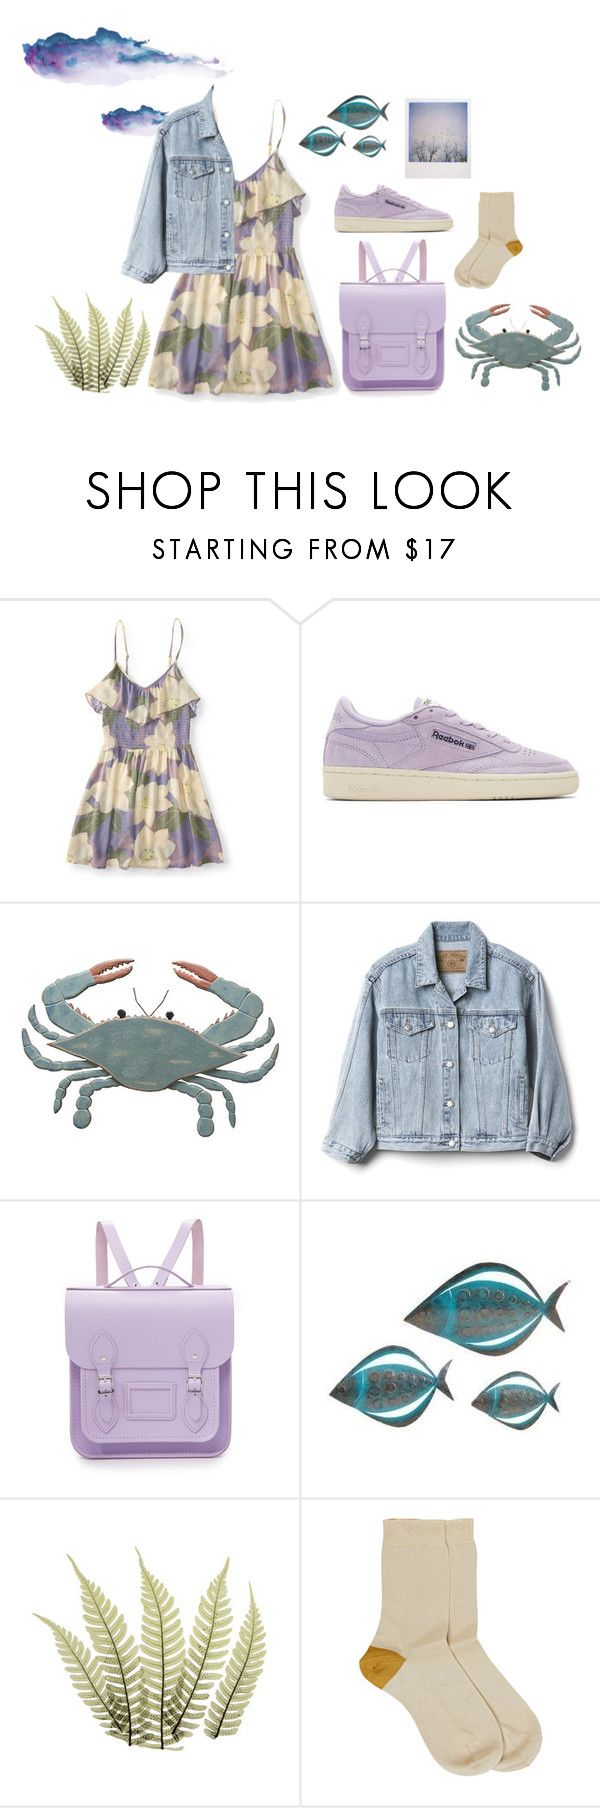 """""""Come away with me"""" by entipuf ❤ liked on Polyvore featuring Aéropostale, Reebok, Primitives By Kathy, Gap, The Cambridge Satchel Company, WALL, Polaroid and Maria La Rosa"""